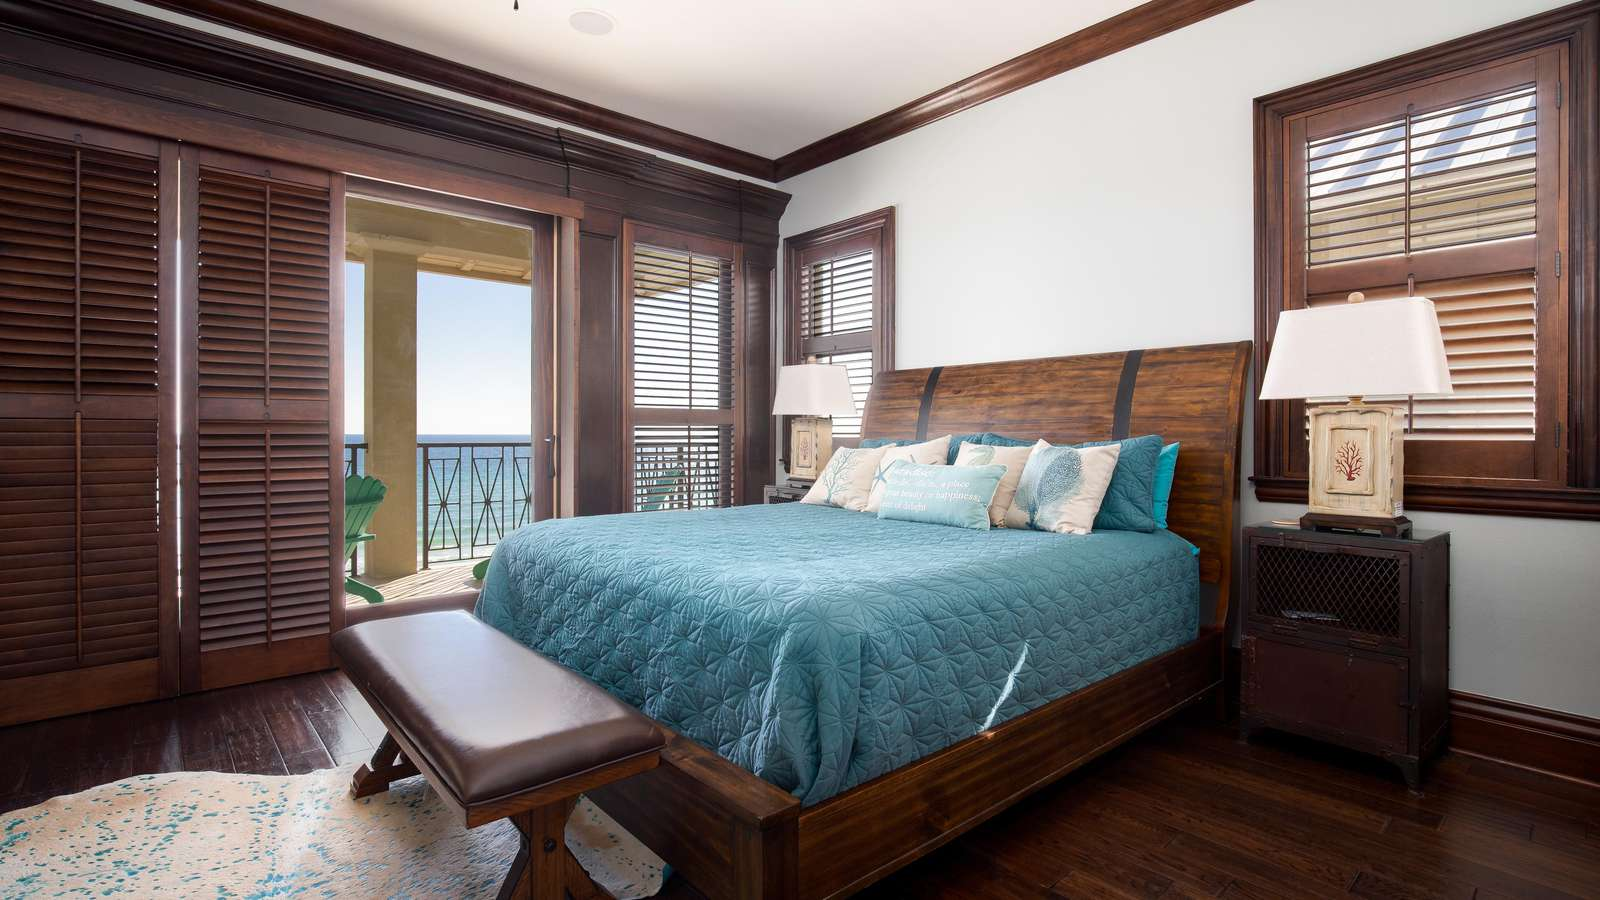 The luxurious master bedroom has a private balcony overlooking the ocean!